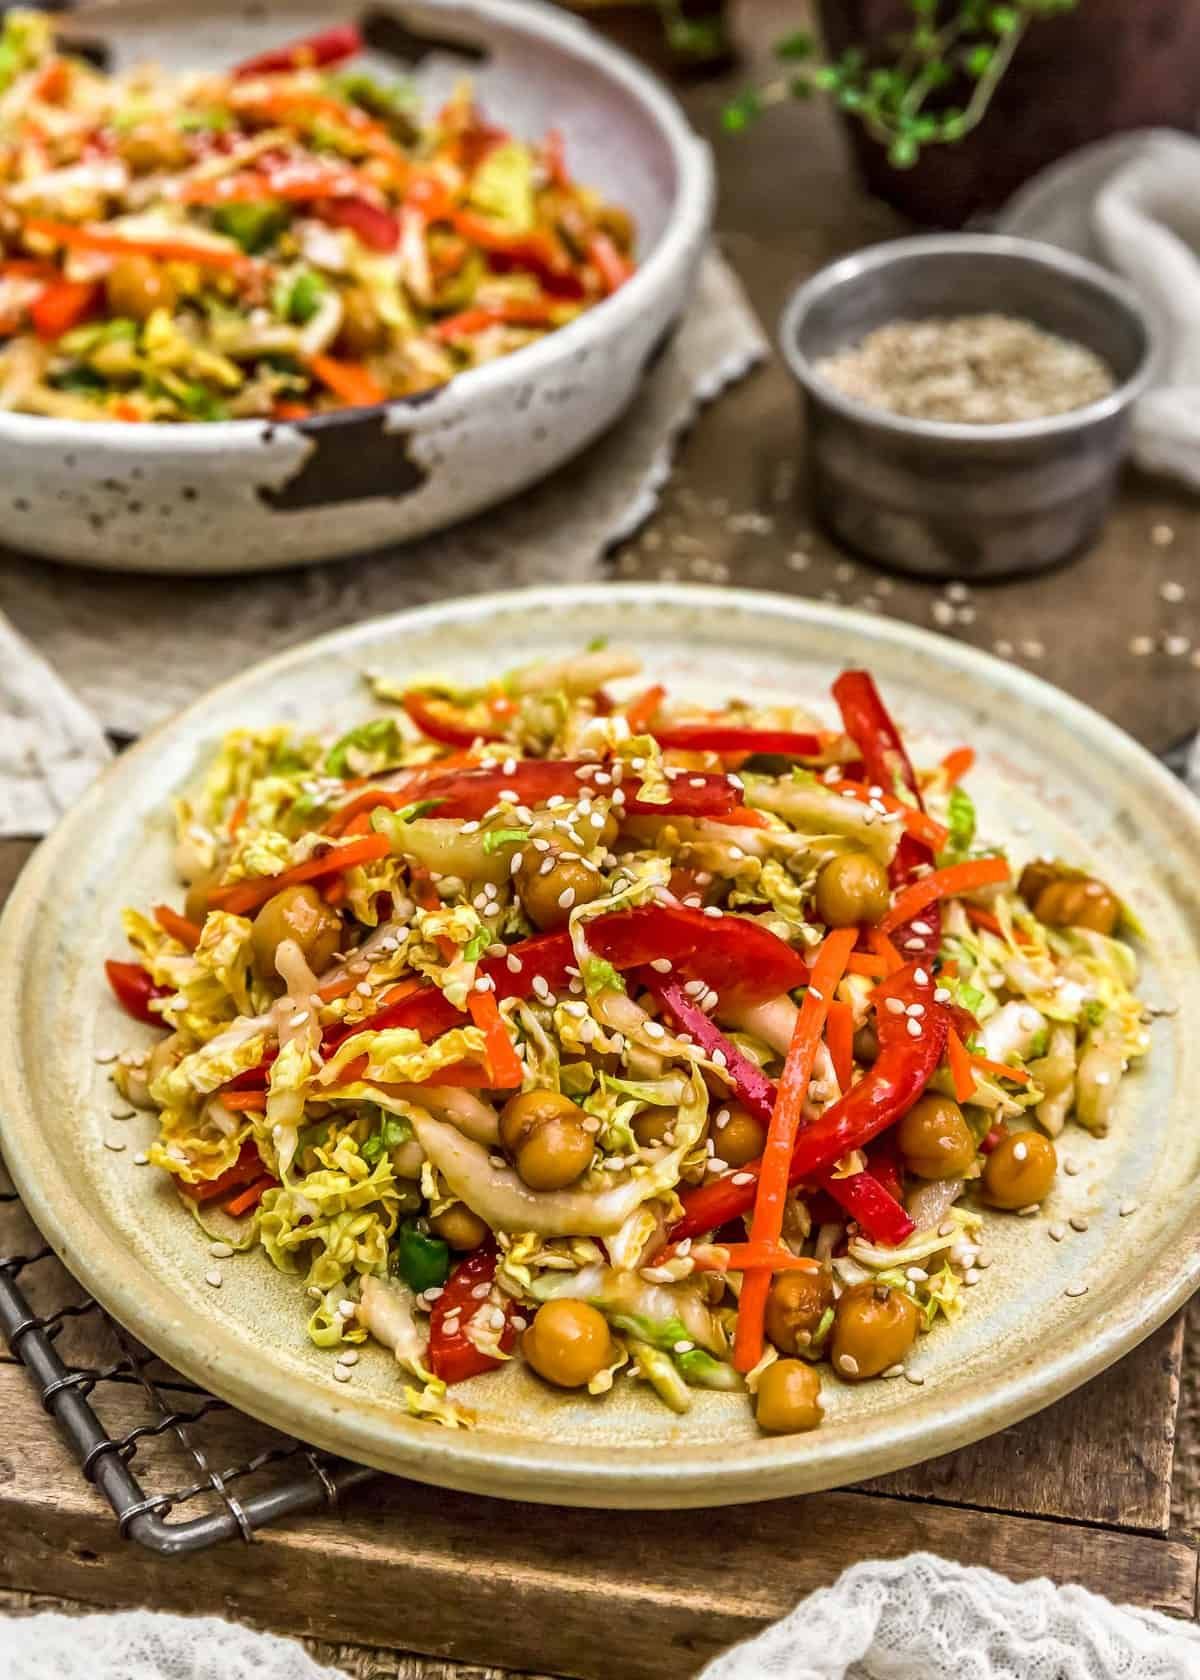 Served Spicy Glazed Chickpea Napa Cabbage Salad